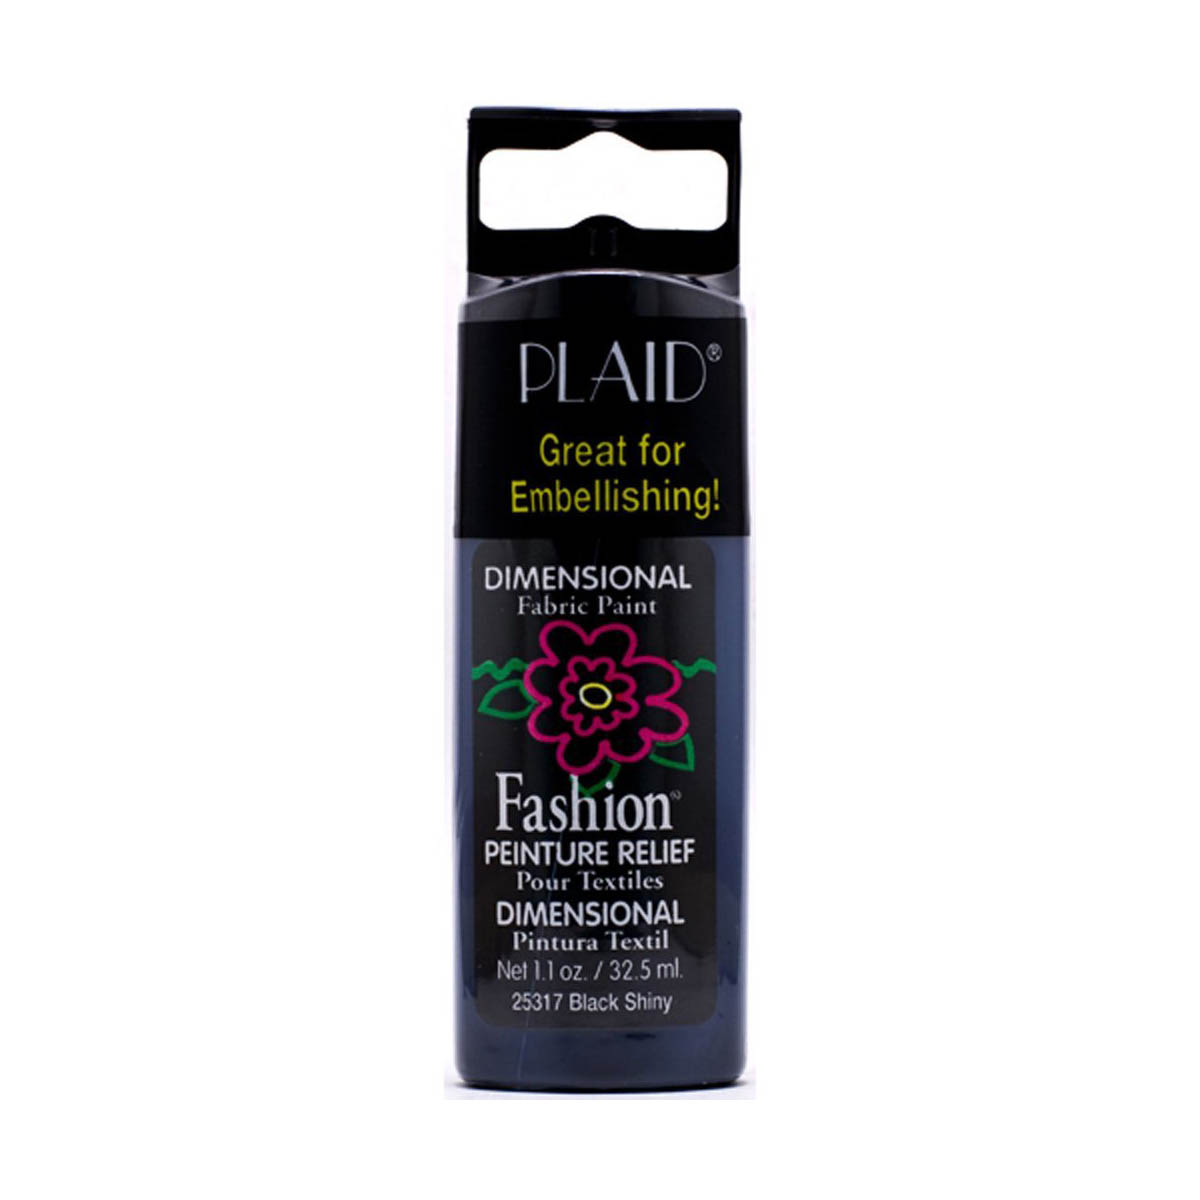 Fashion ® Dimensional Fabric Paint  - Shiny - Black - 25317